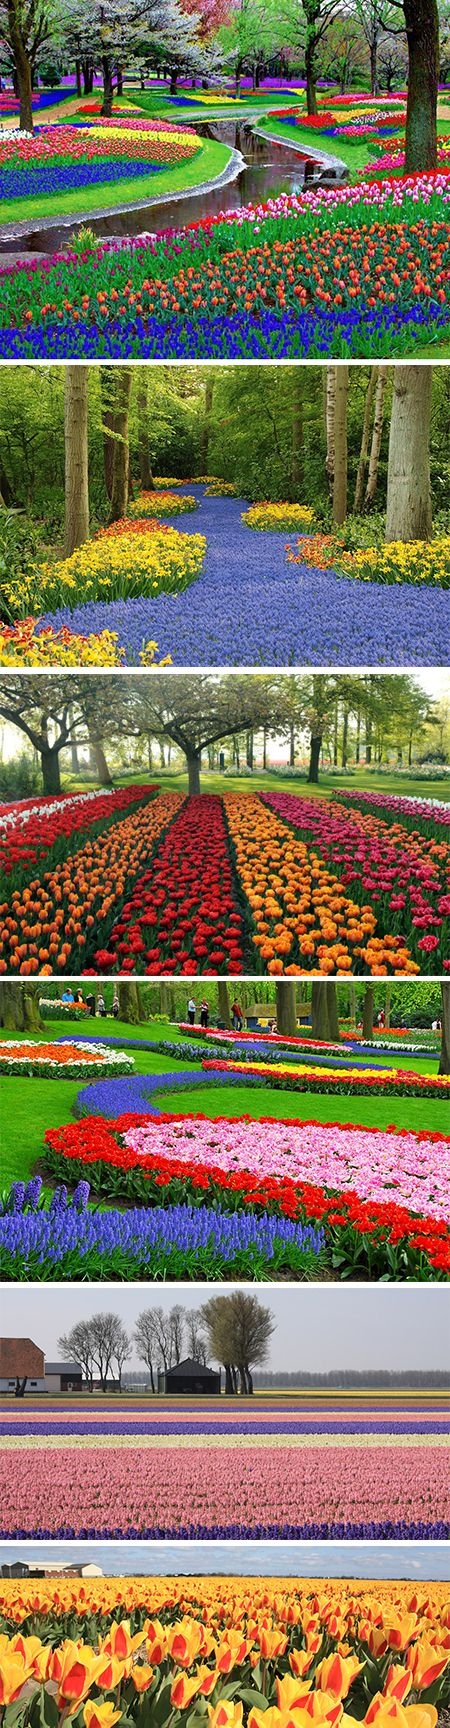 Keukenhof -largest flower garden in Europe-, Netherlands